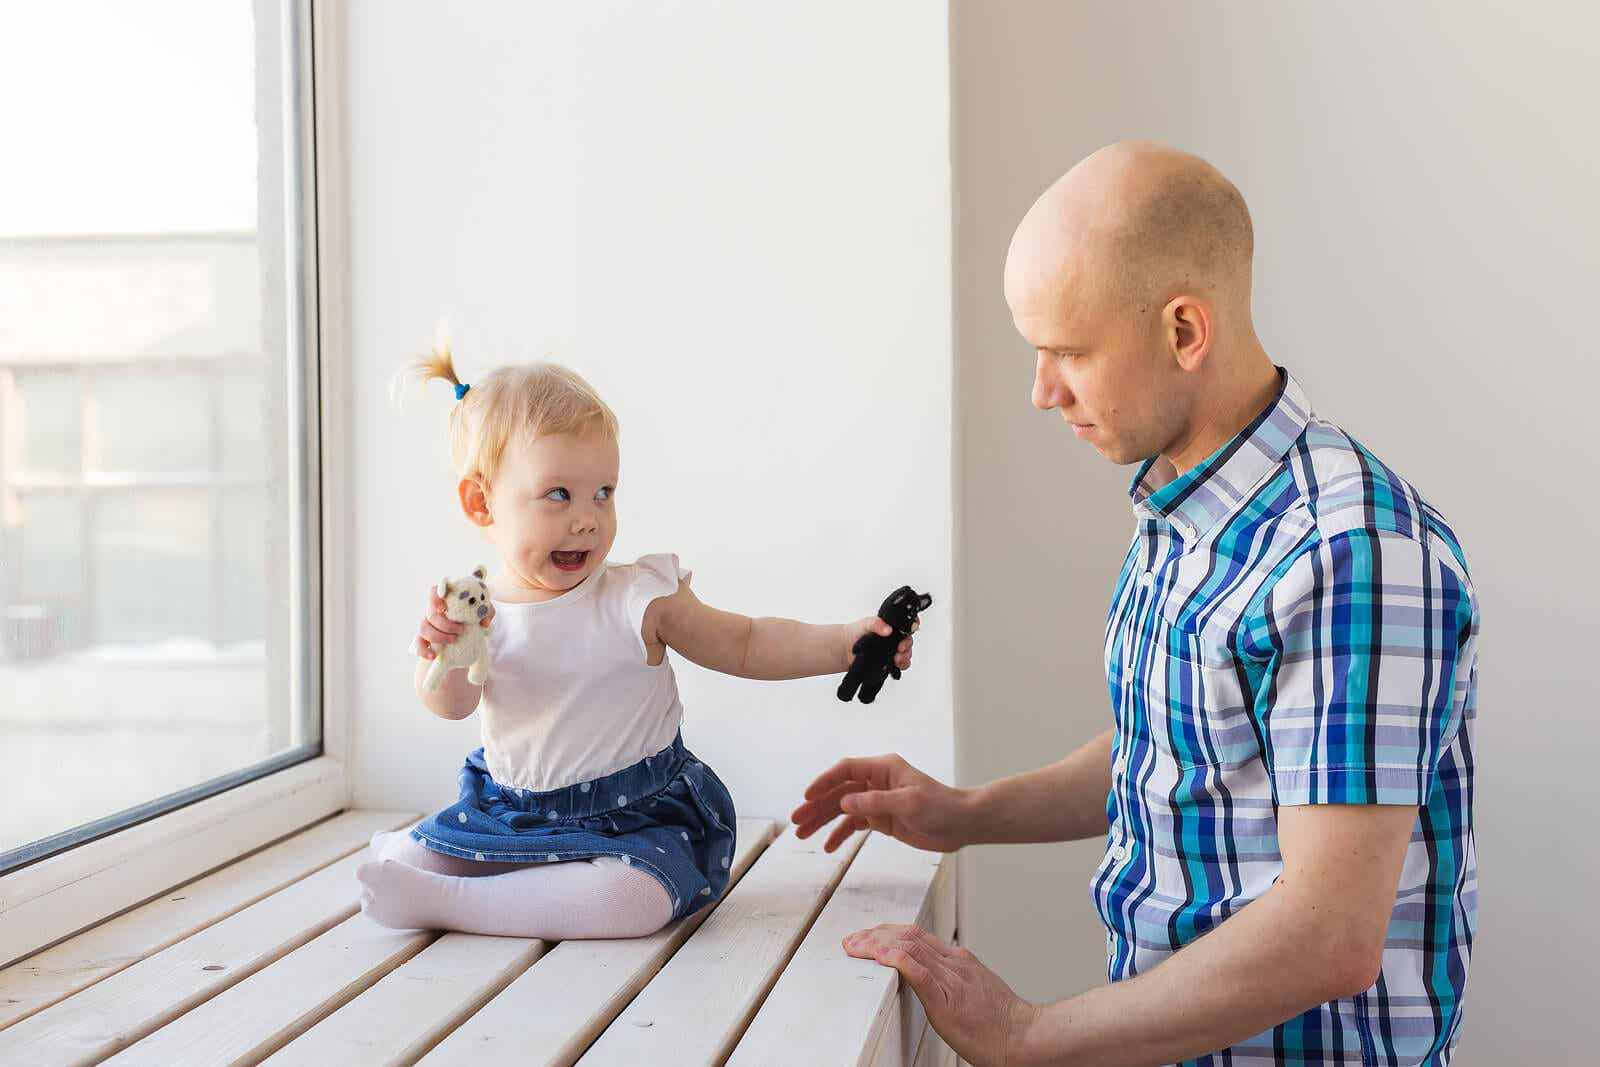 A toddler communicating with her dad.